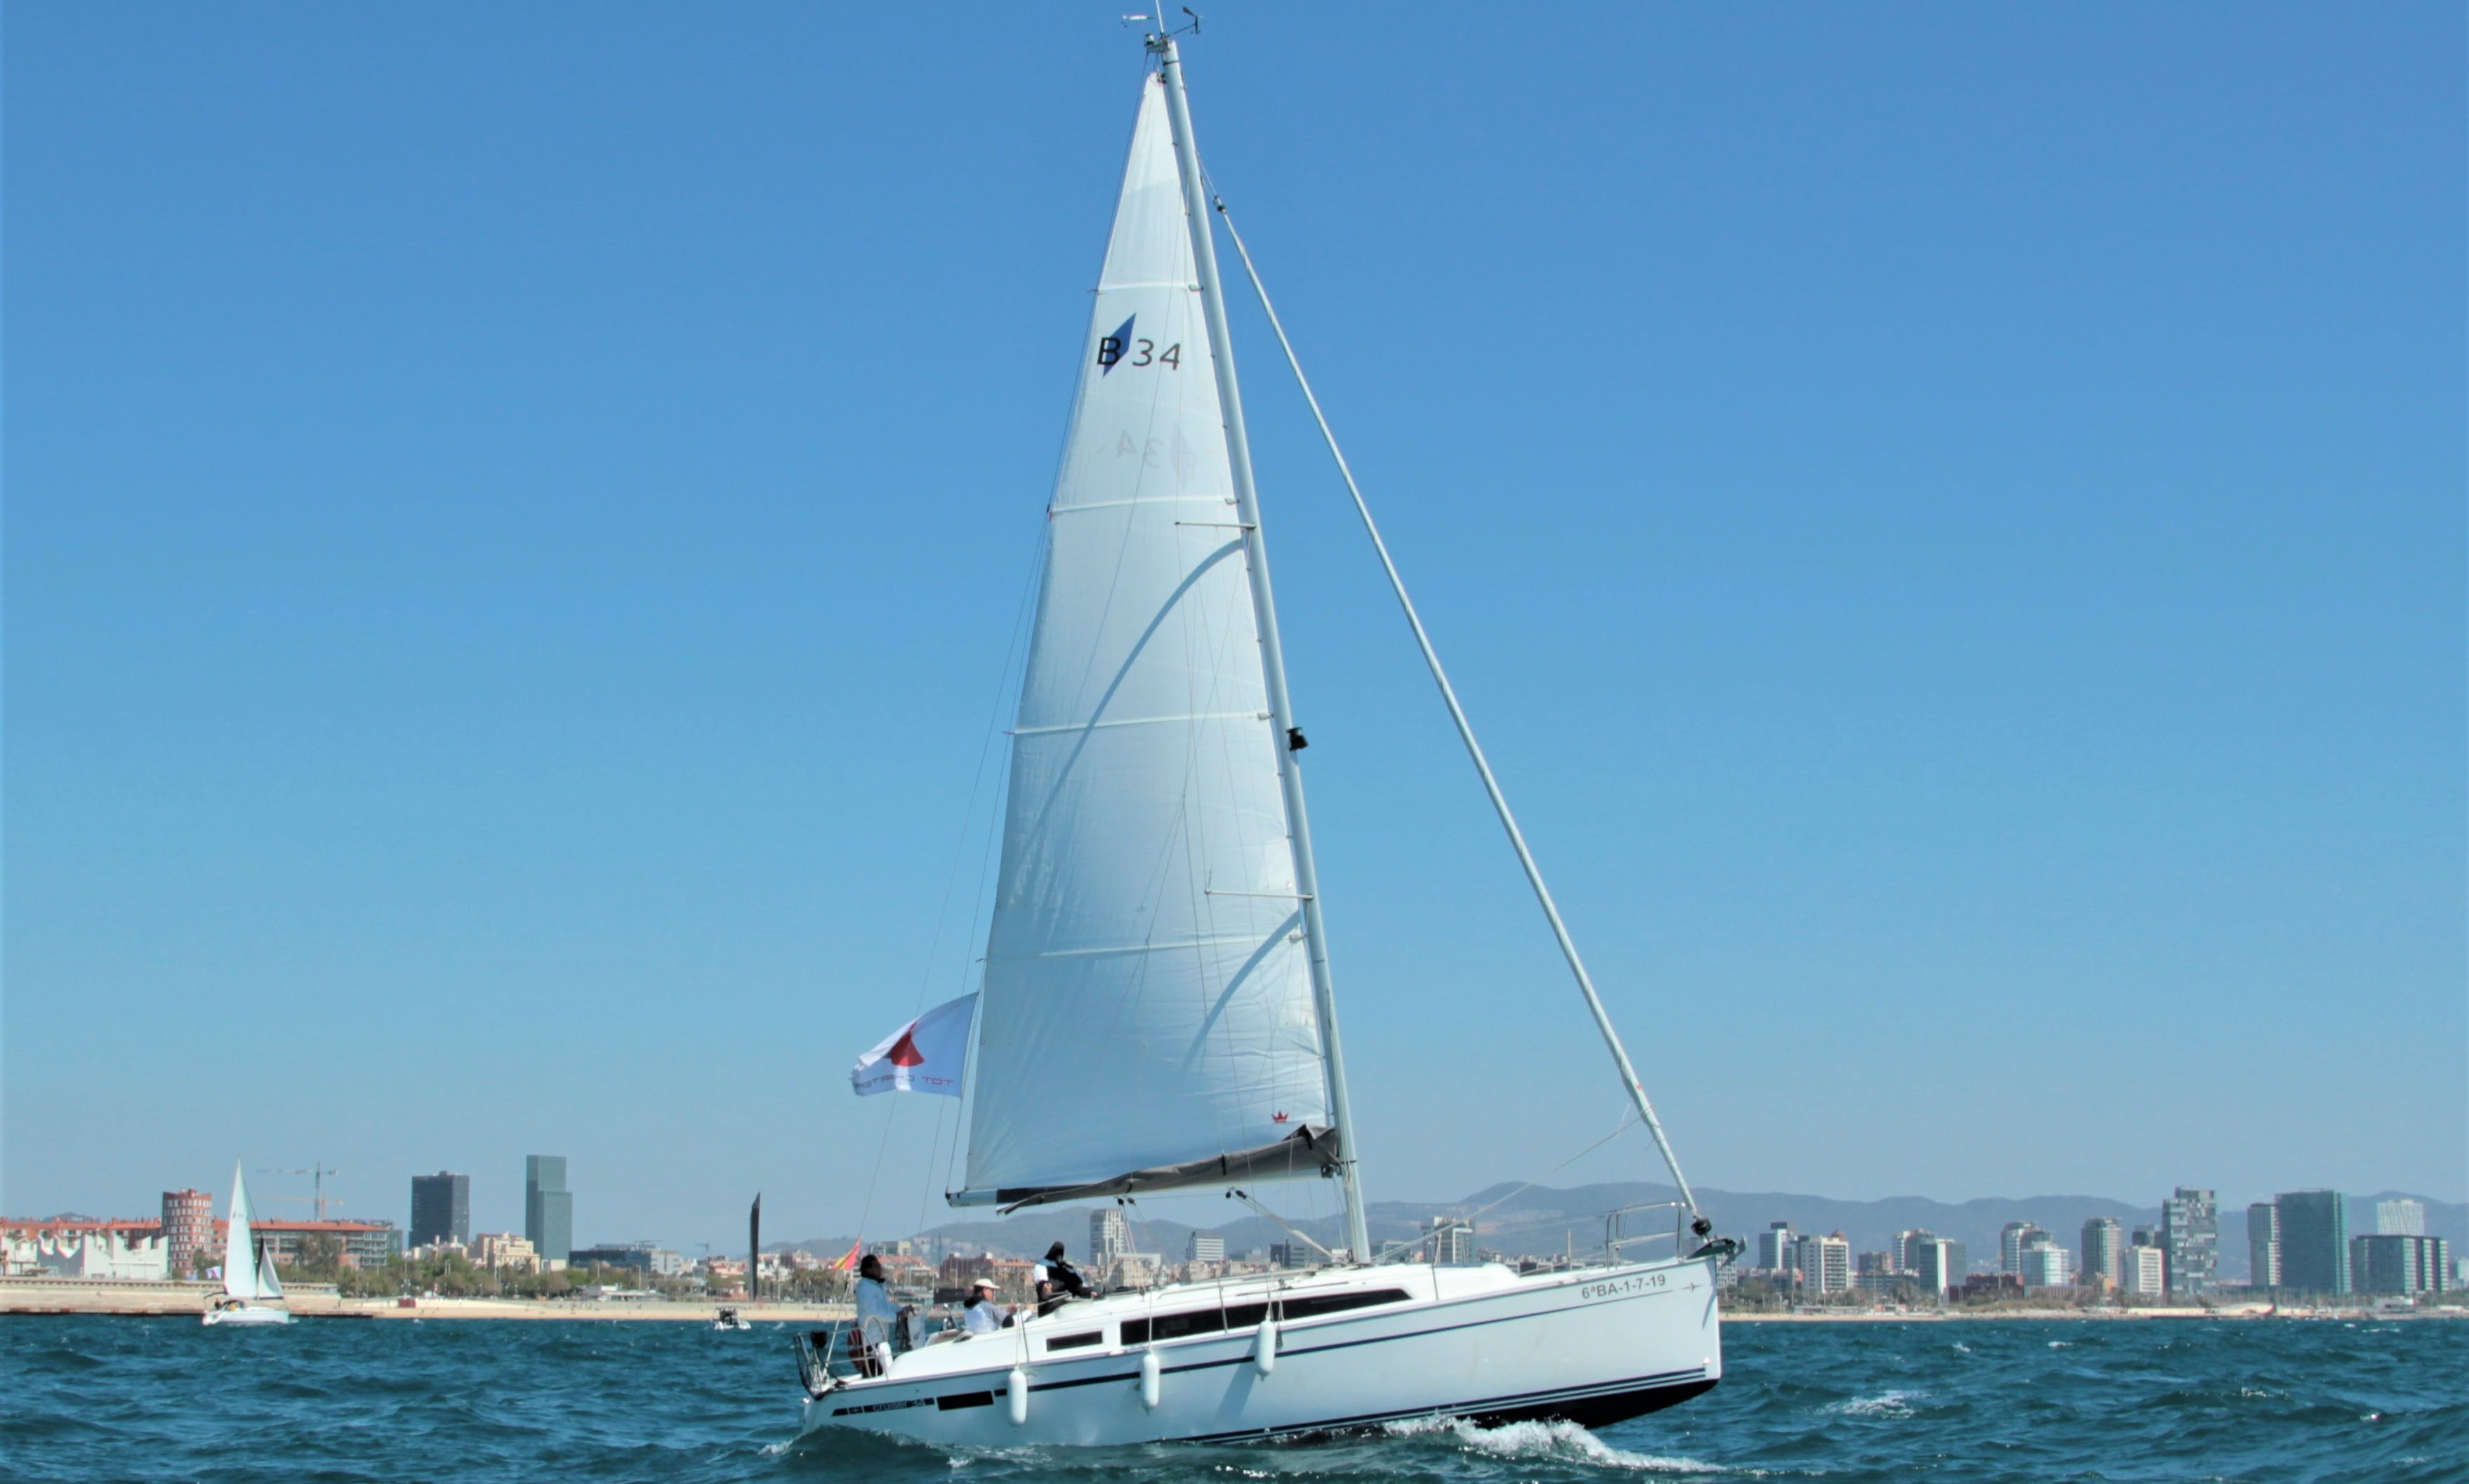 Charter this New 10-Person Bavaria 34 2019 in Barcelona!